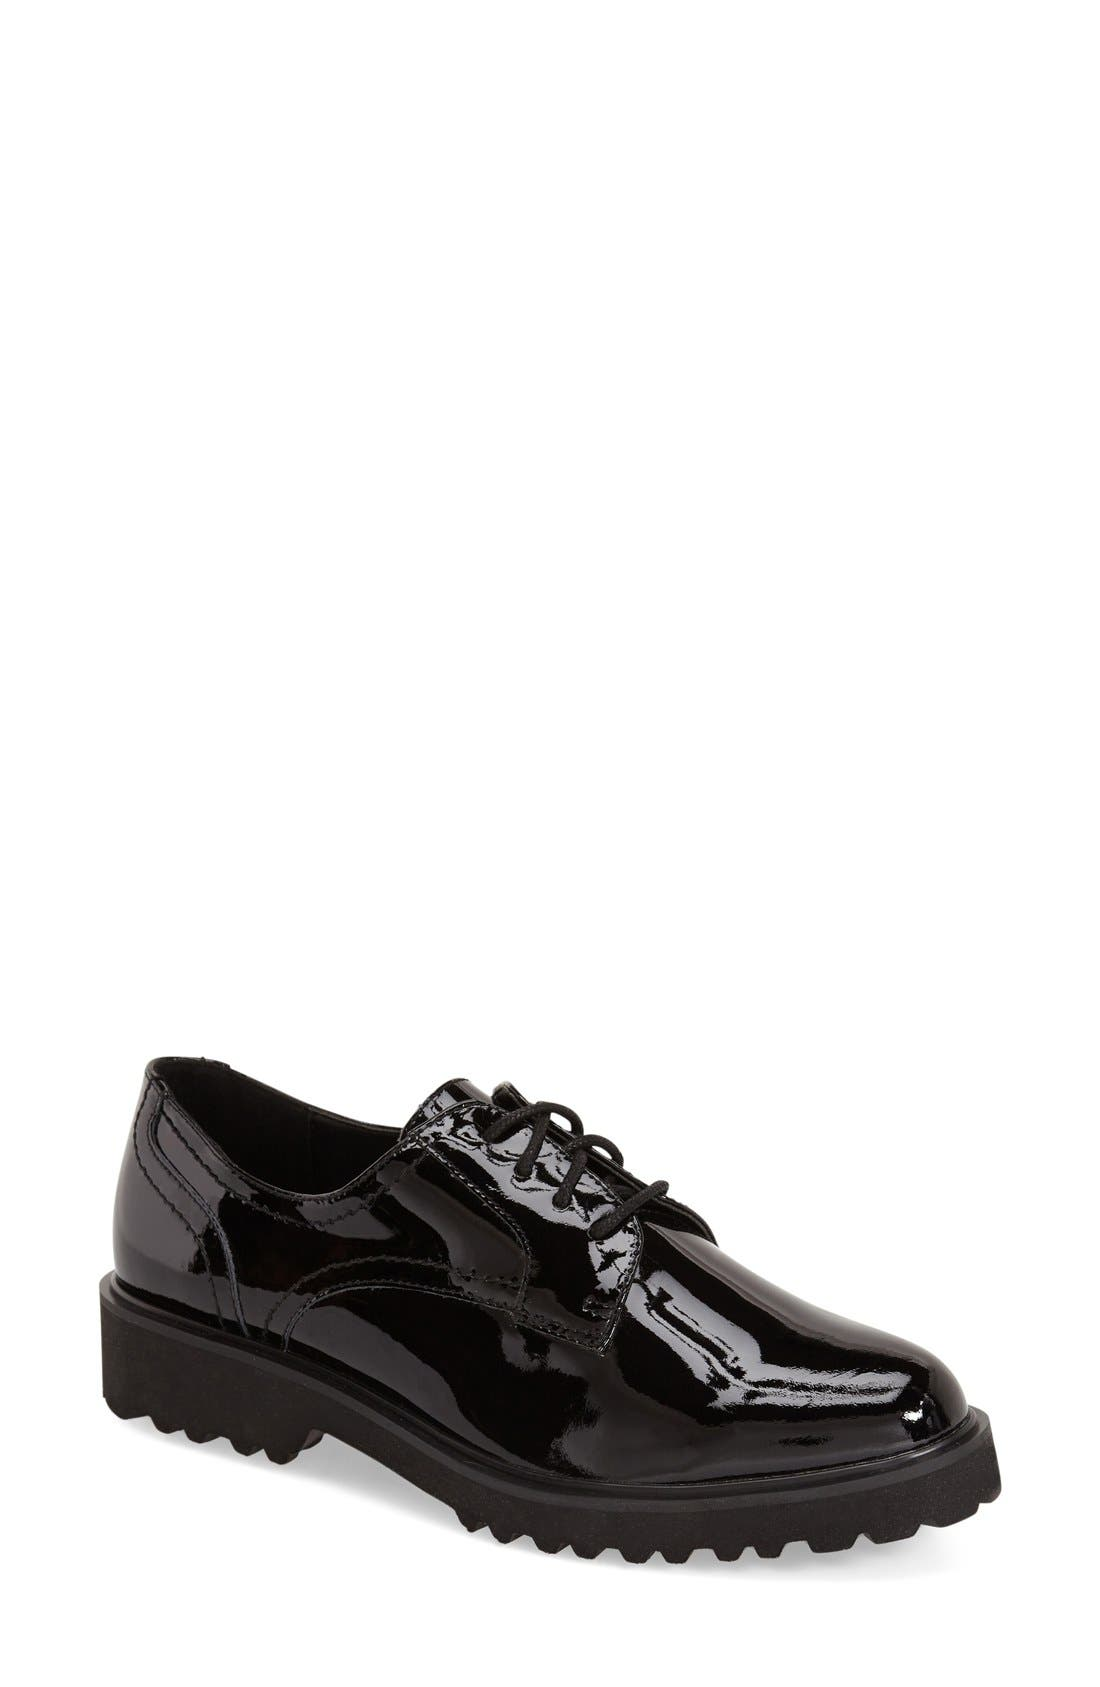 Alternate Image 1 Selected - Dune London 'Filipo' Lug Sole Water Resistant Oxford (Women)